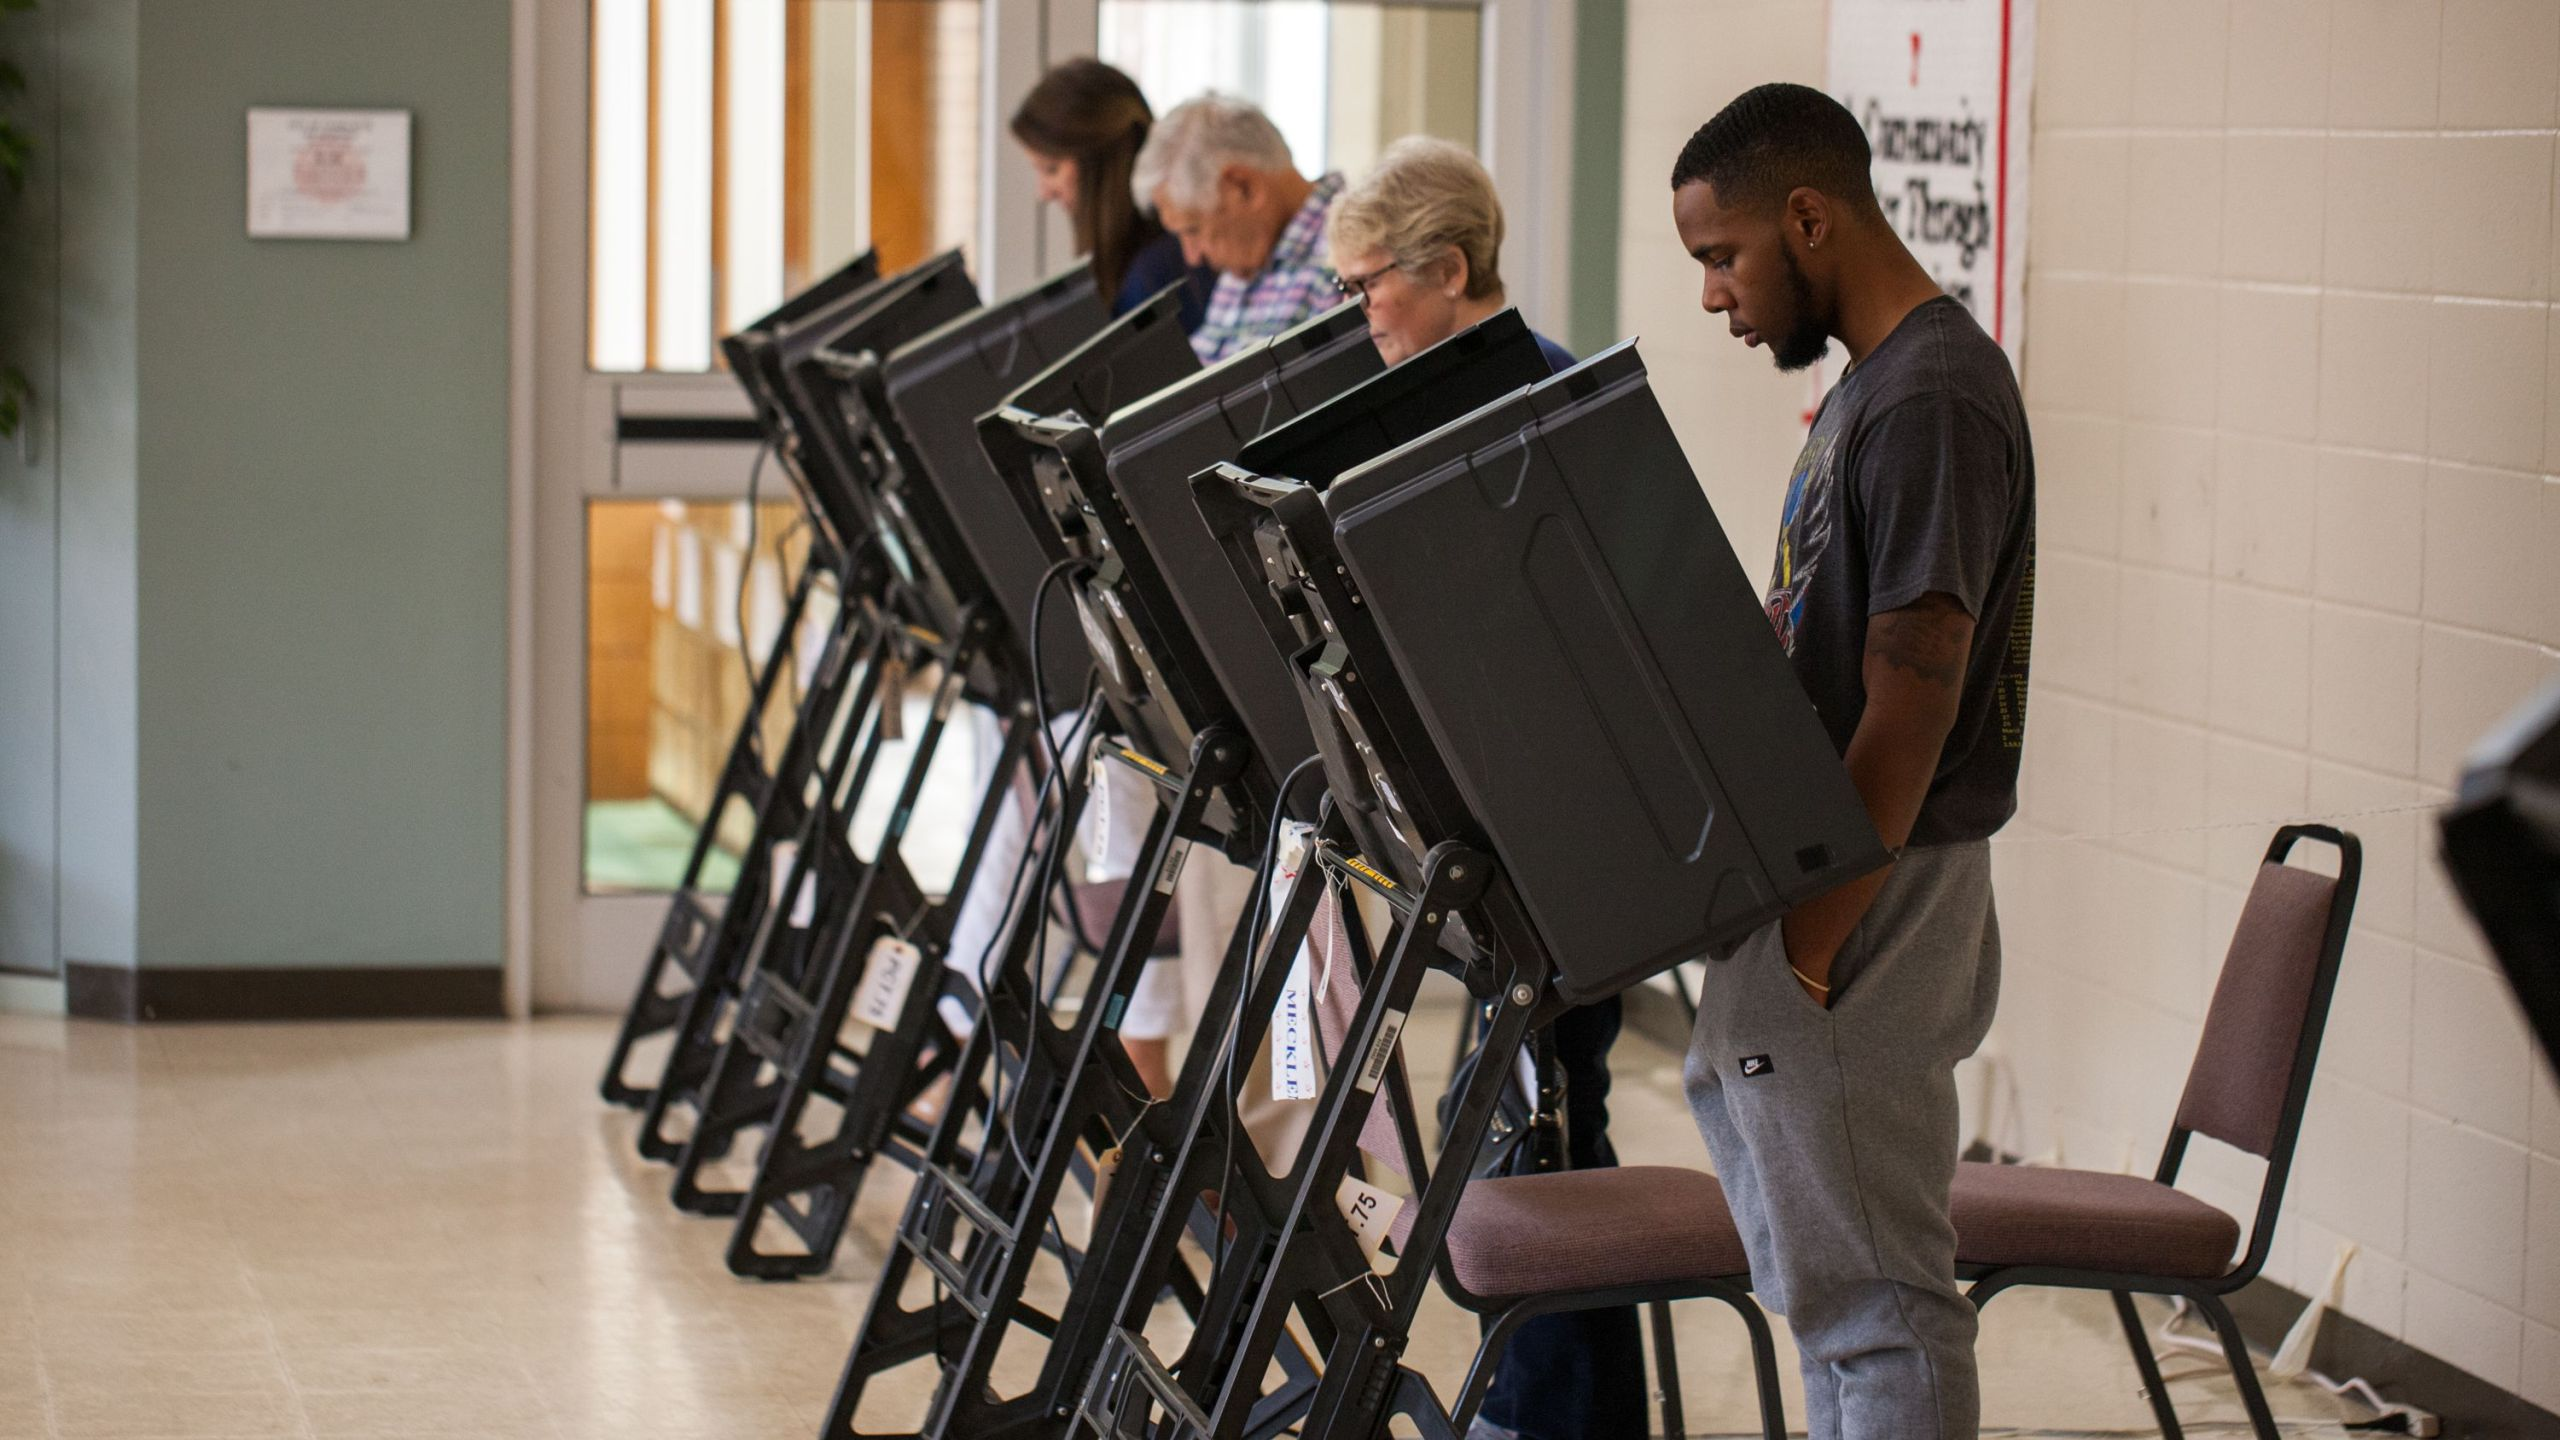 Residents cast their vote in Charlotte, North Carolina on Nov. 6, 2018. (Credit: Logan Cyrus/AFP/Getty Images)